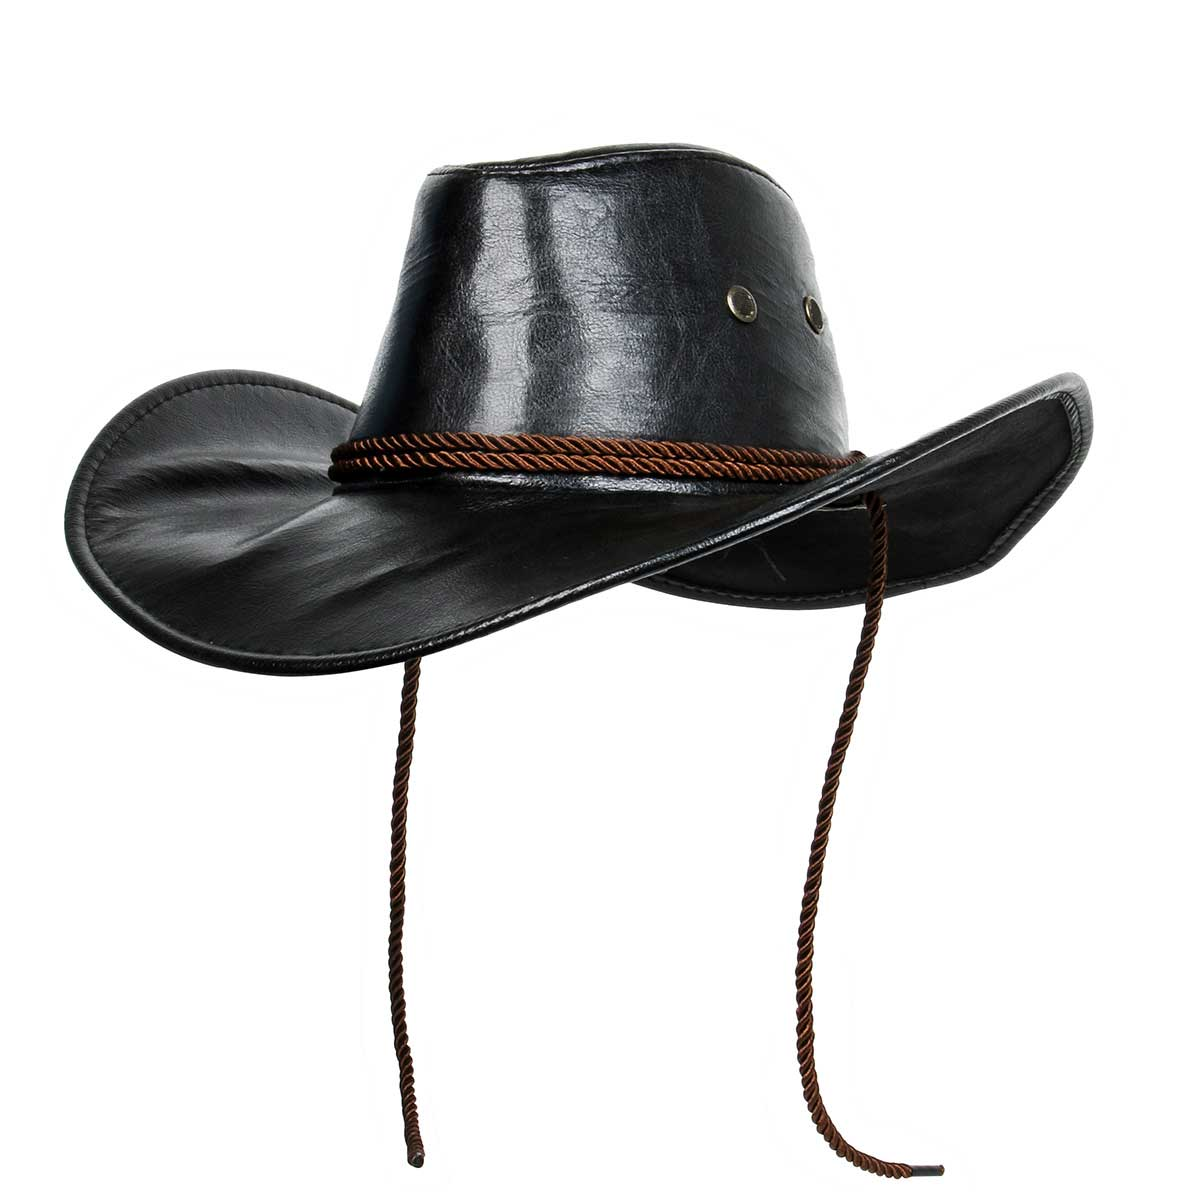 Game RDR2 Red Dead Redemption 2 Cowboy Cosplay Hat Halloween Party Props-Takerlama